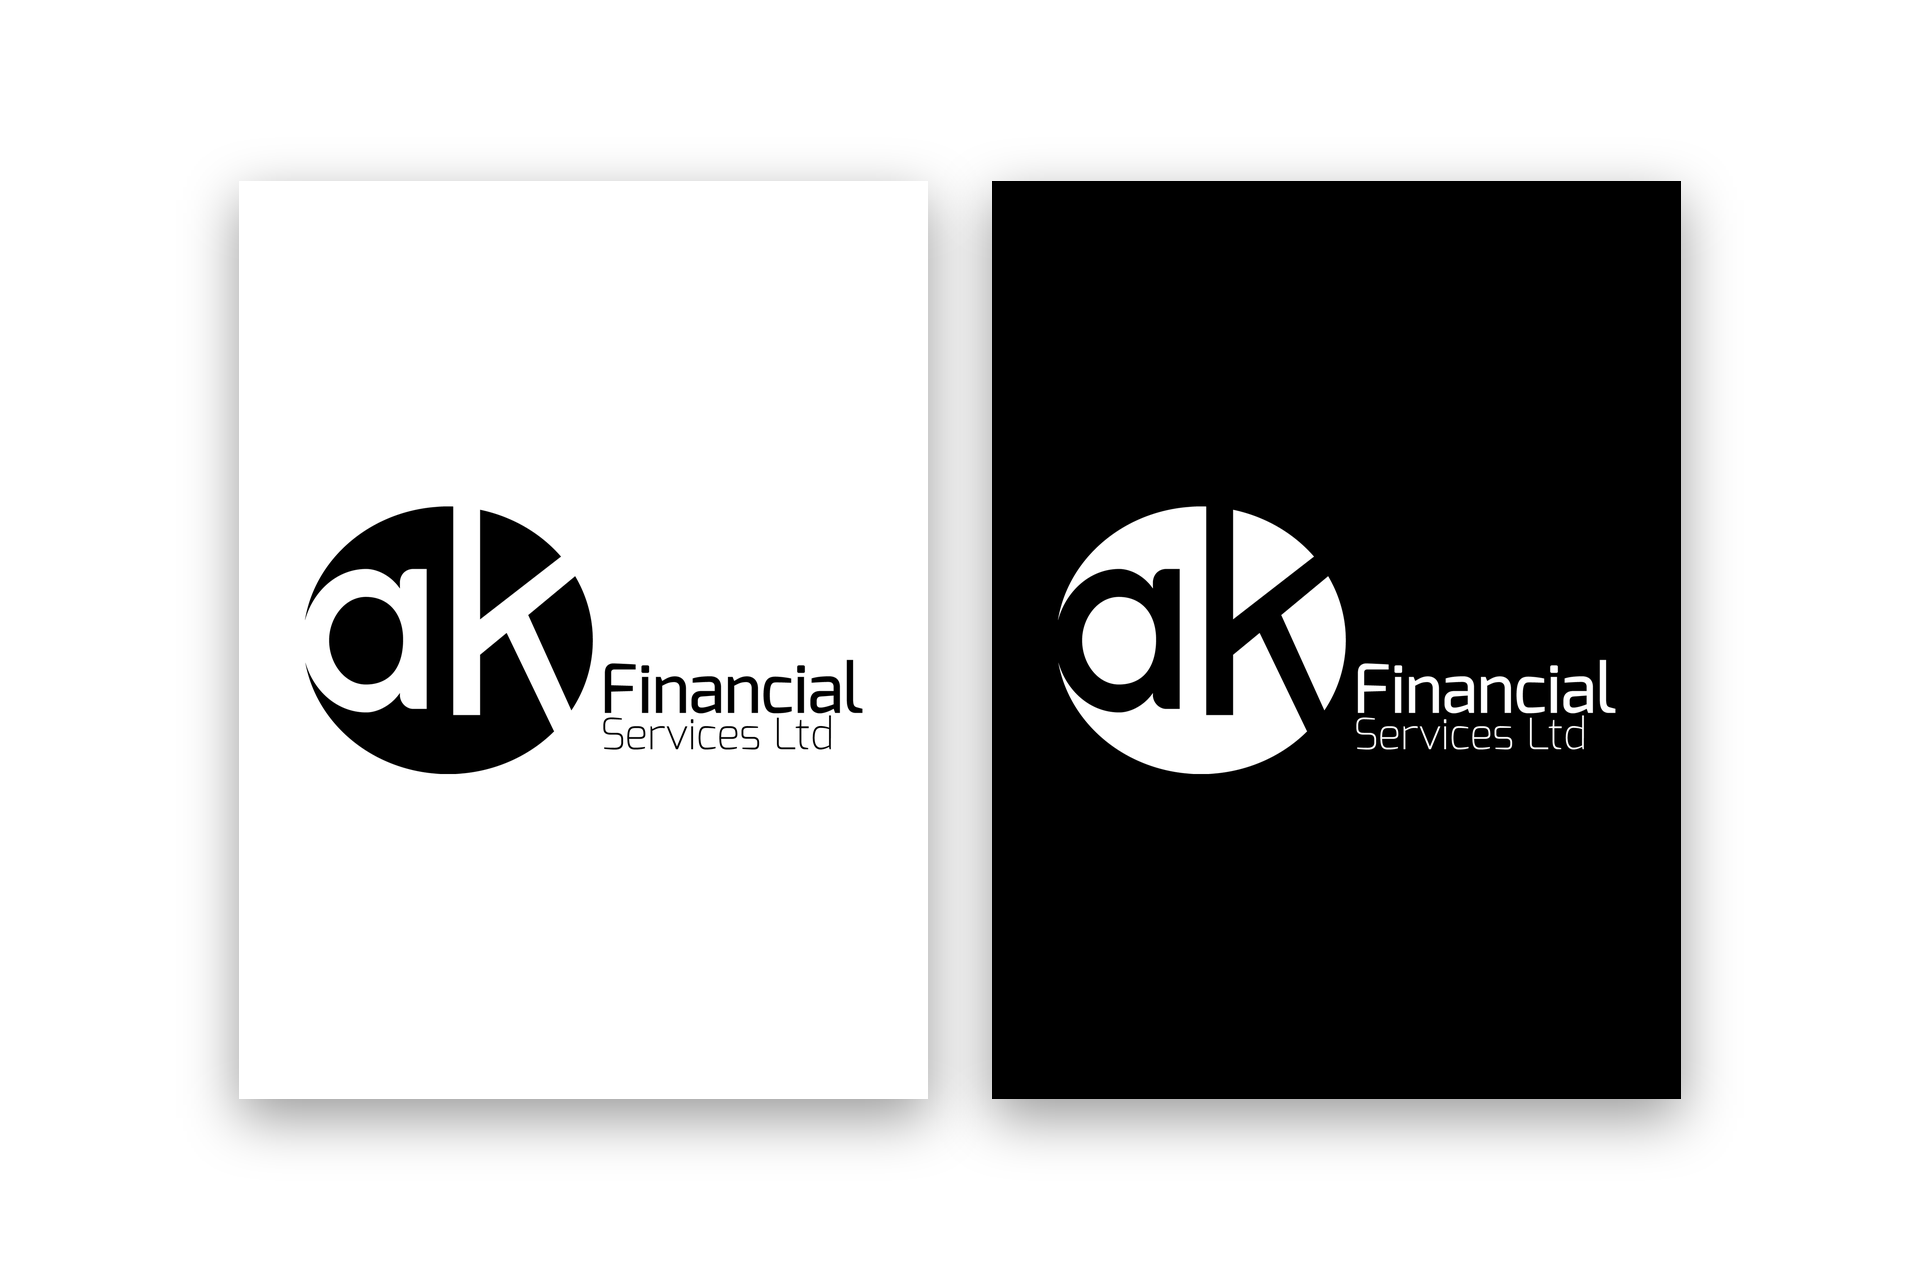 ak Financial Logo & Brand Identity Design_3